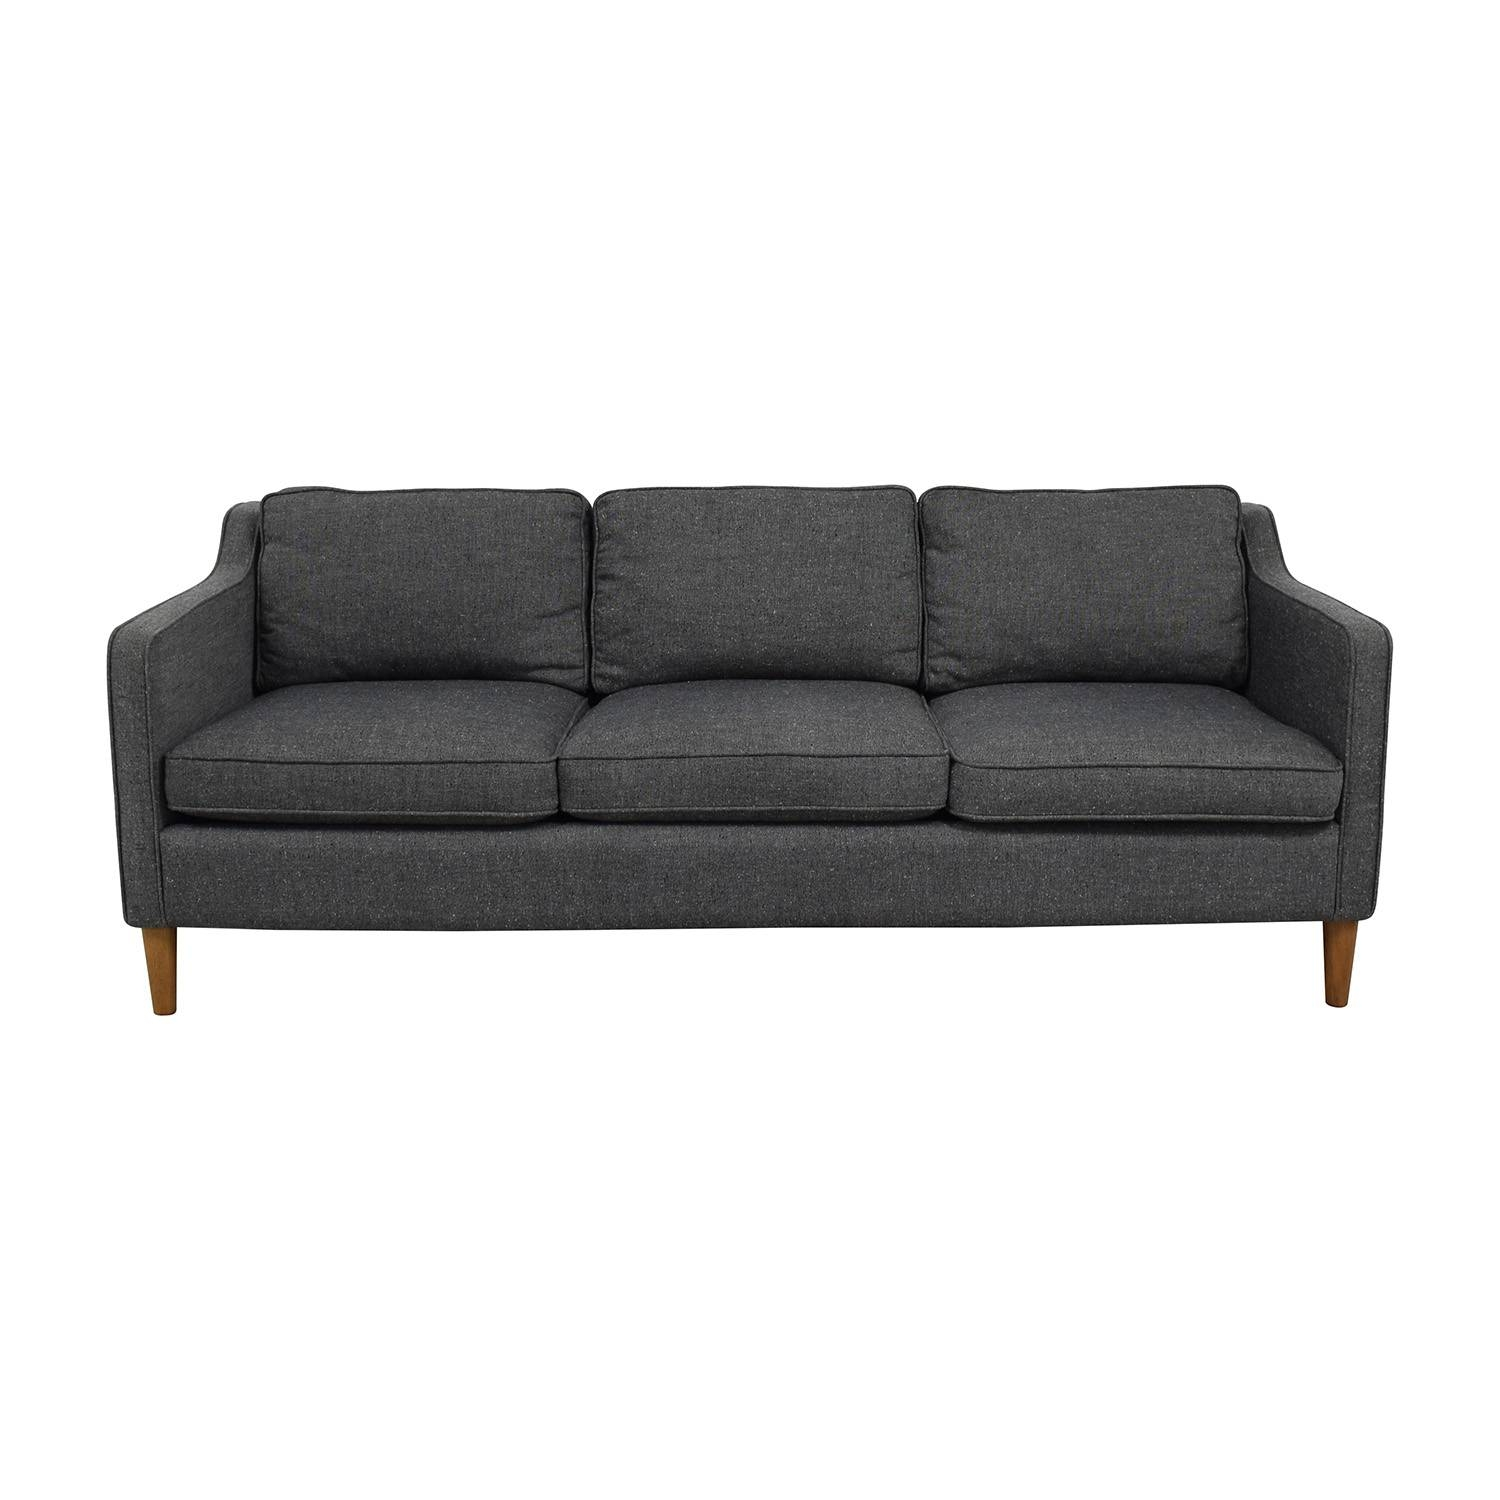 Sofas Center : Reviews Henry Sleeper Sofa West Elm Craigslist with regard to Craigslist Sleeper Sofa (Image 24 of 30)